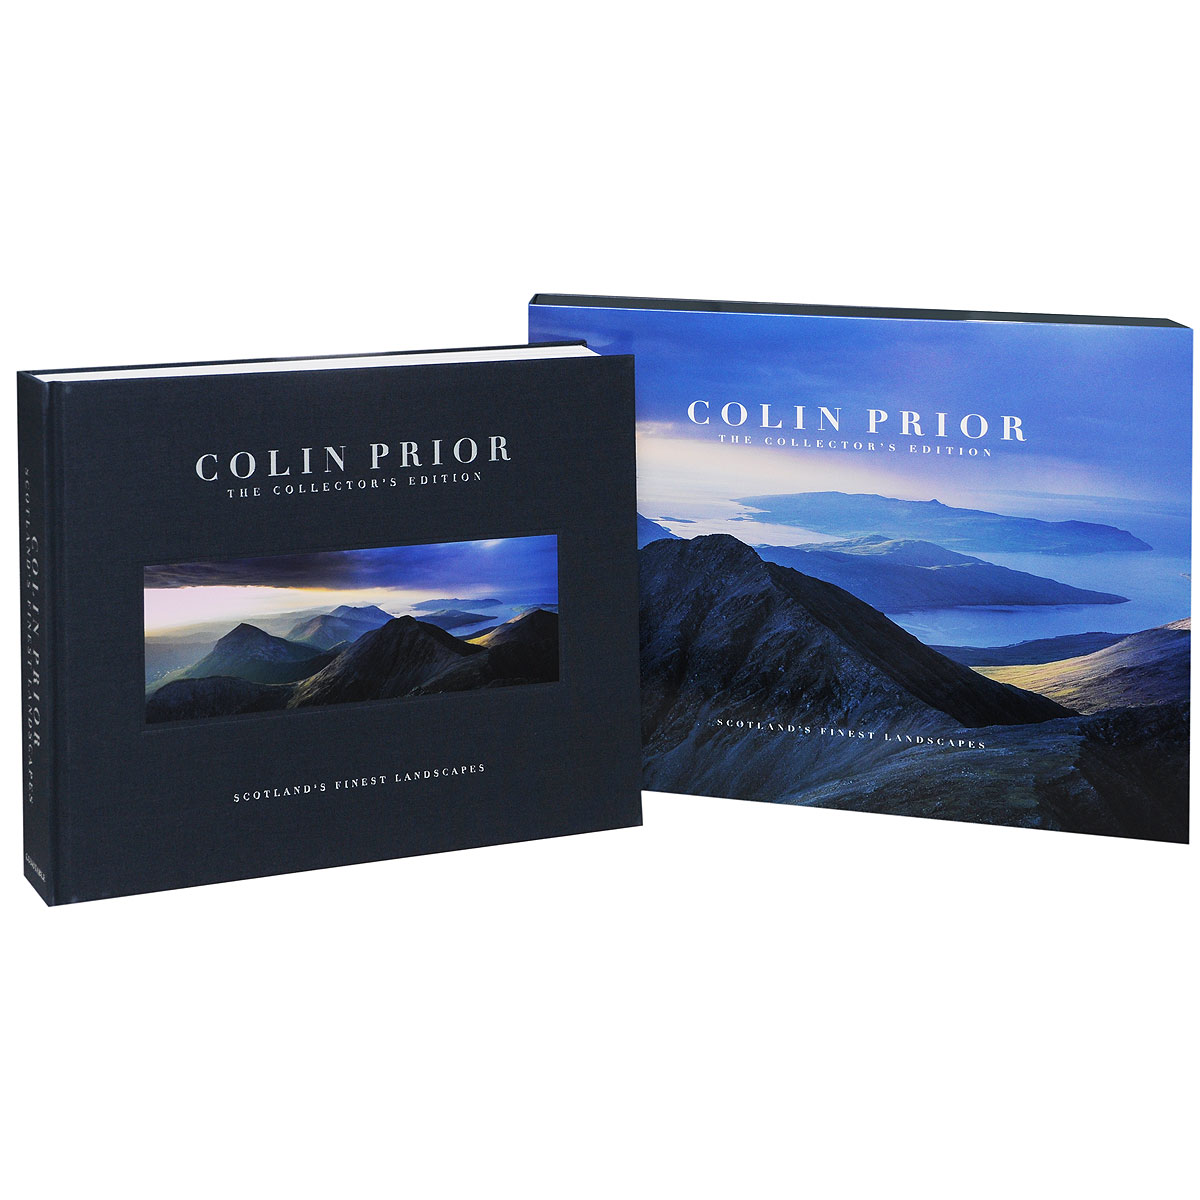 Scotland's Finest Landscapes: The Collector's Edition: 25 Years their finest